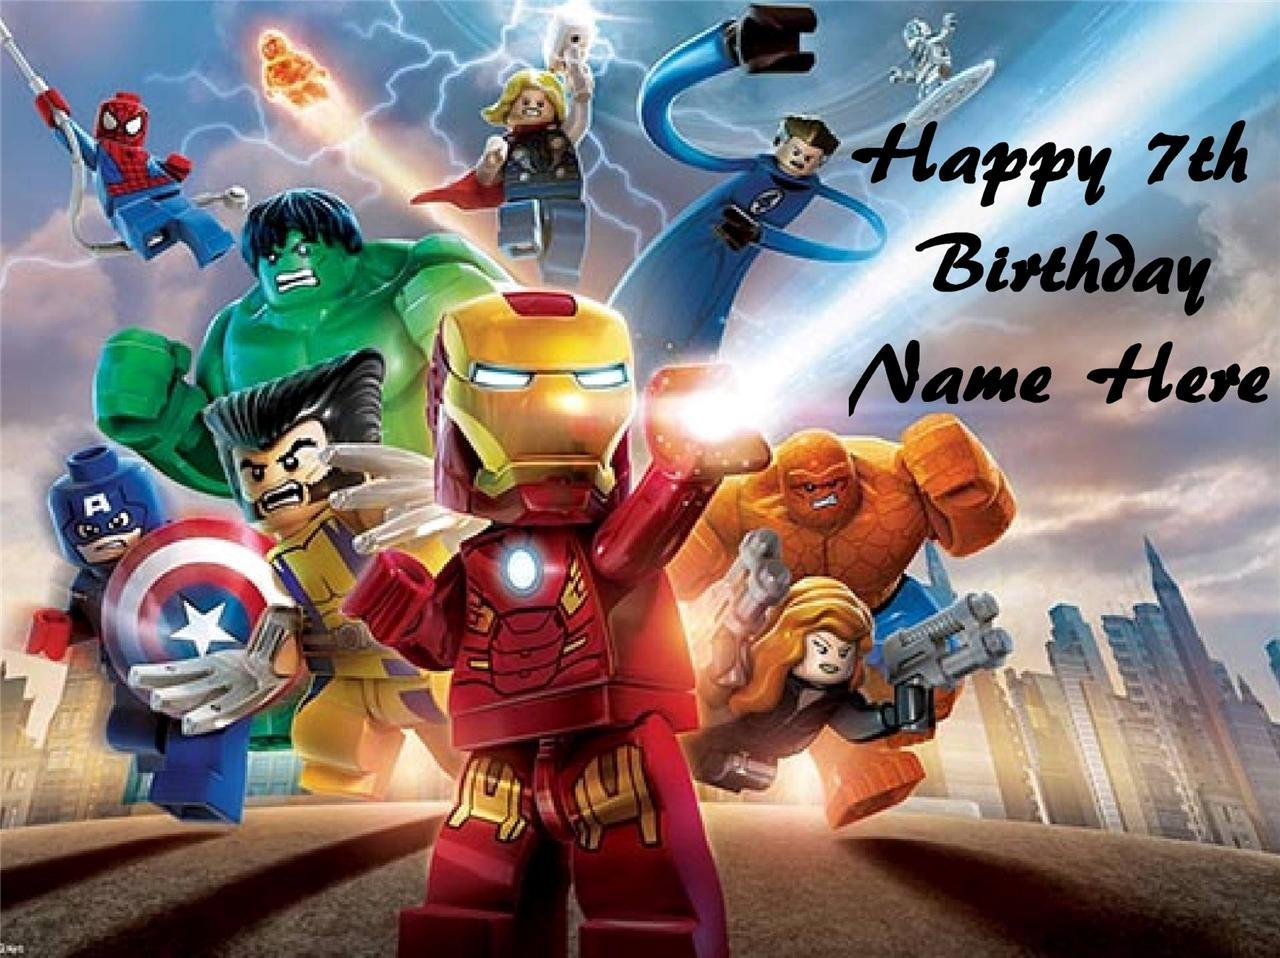 Lego Super Heroes edible icing cake toppers. View 3 images Select + personalise! image 2